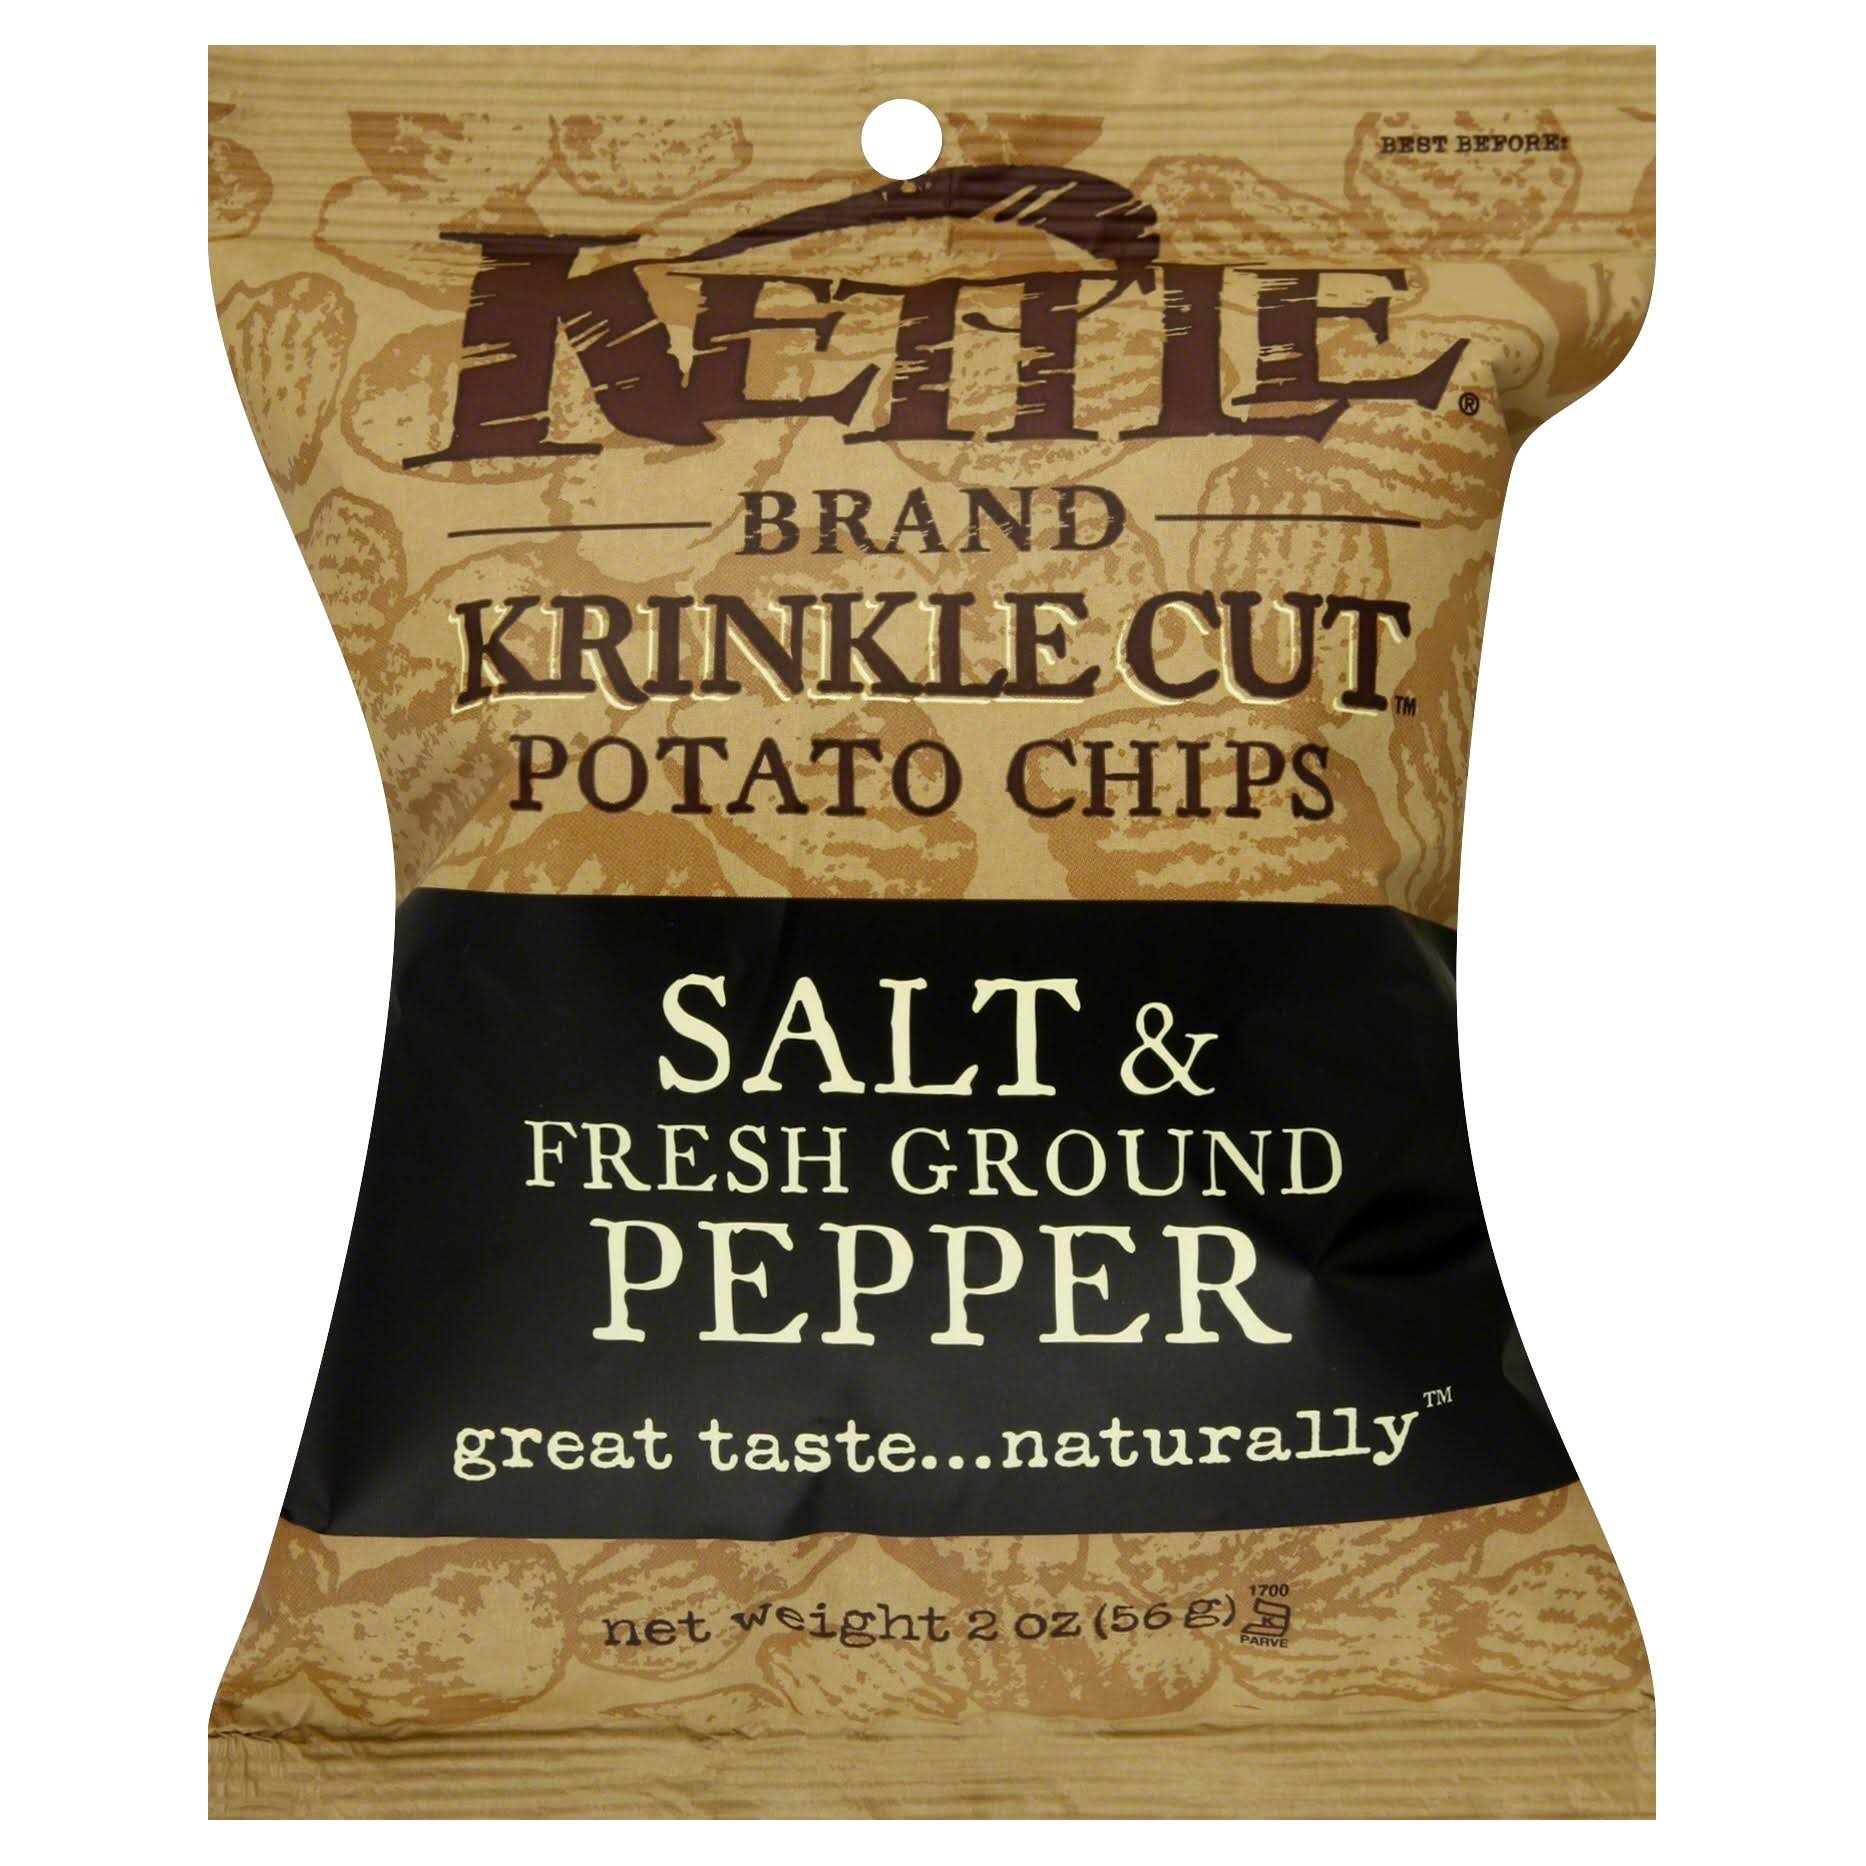 Kettle Brand Krinkle Cut Potato Chips - Salt and Fresh Ground Pepper, 2oz